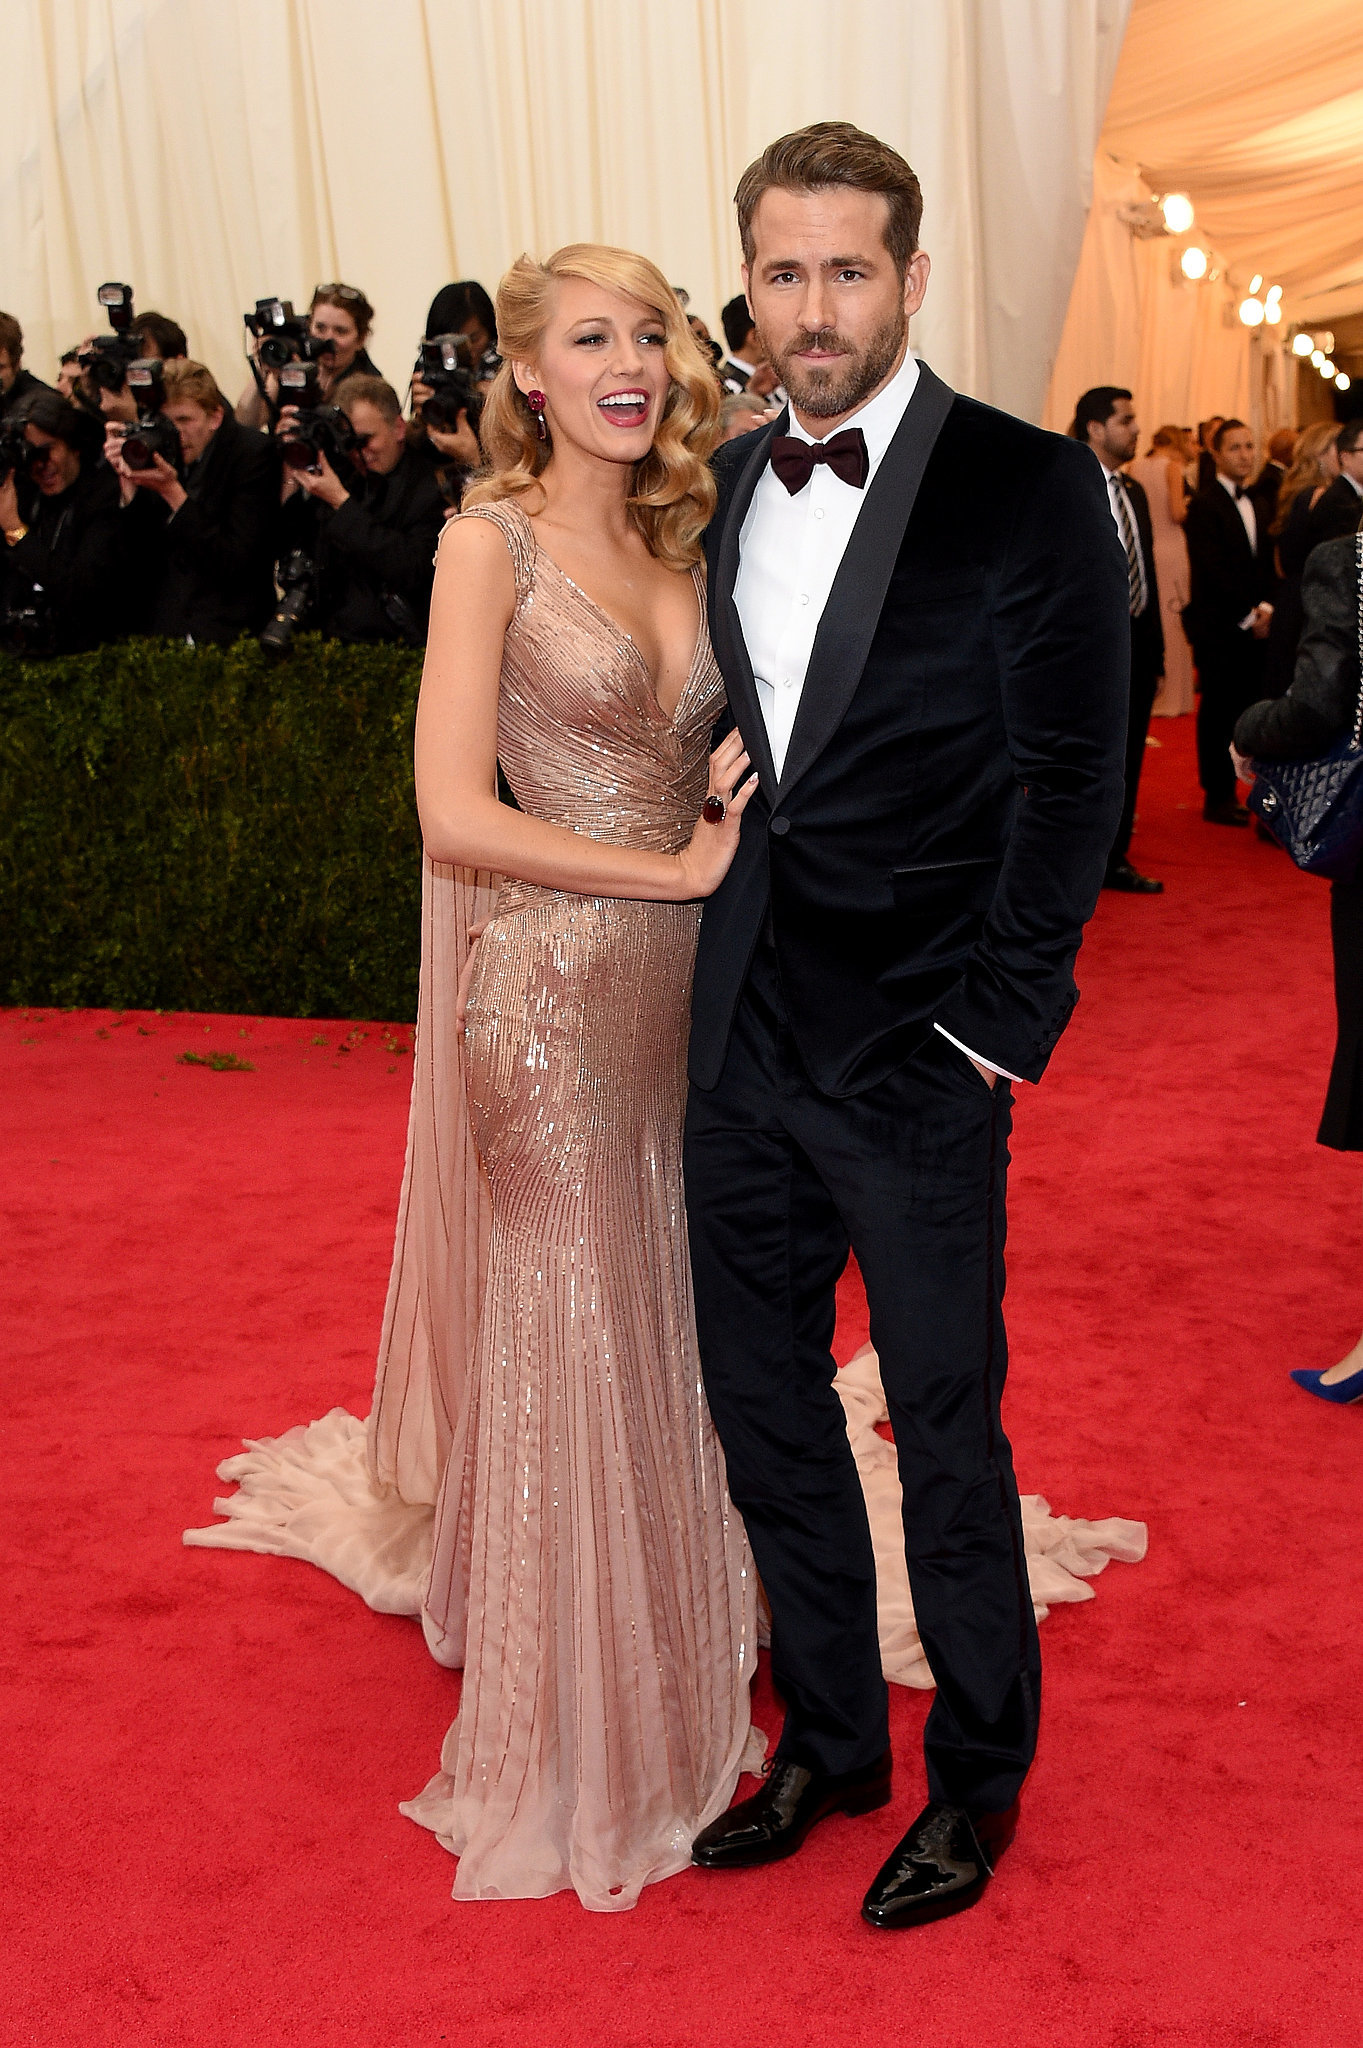 Blake Lively And Ryan Reynolds Go Glam Or Go Home All